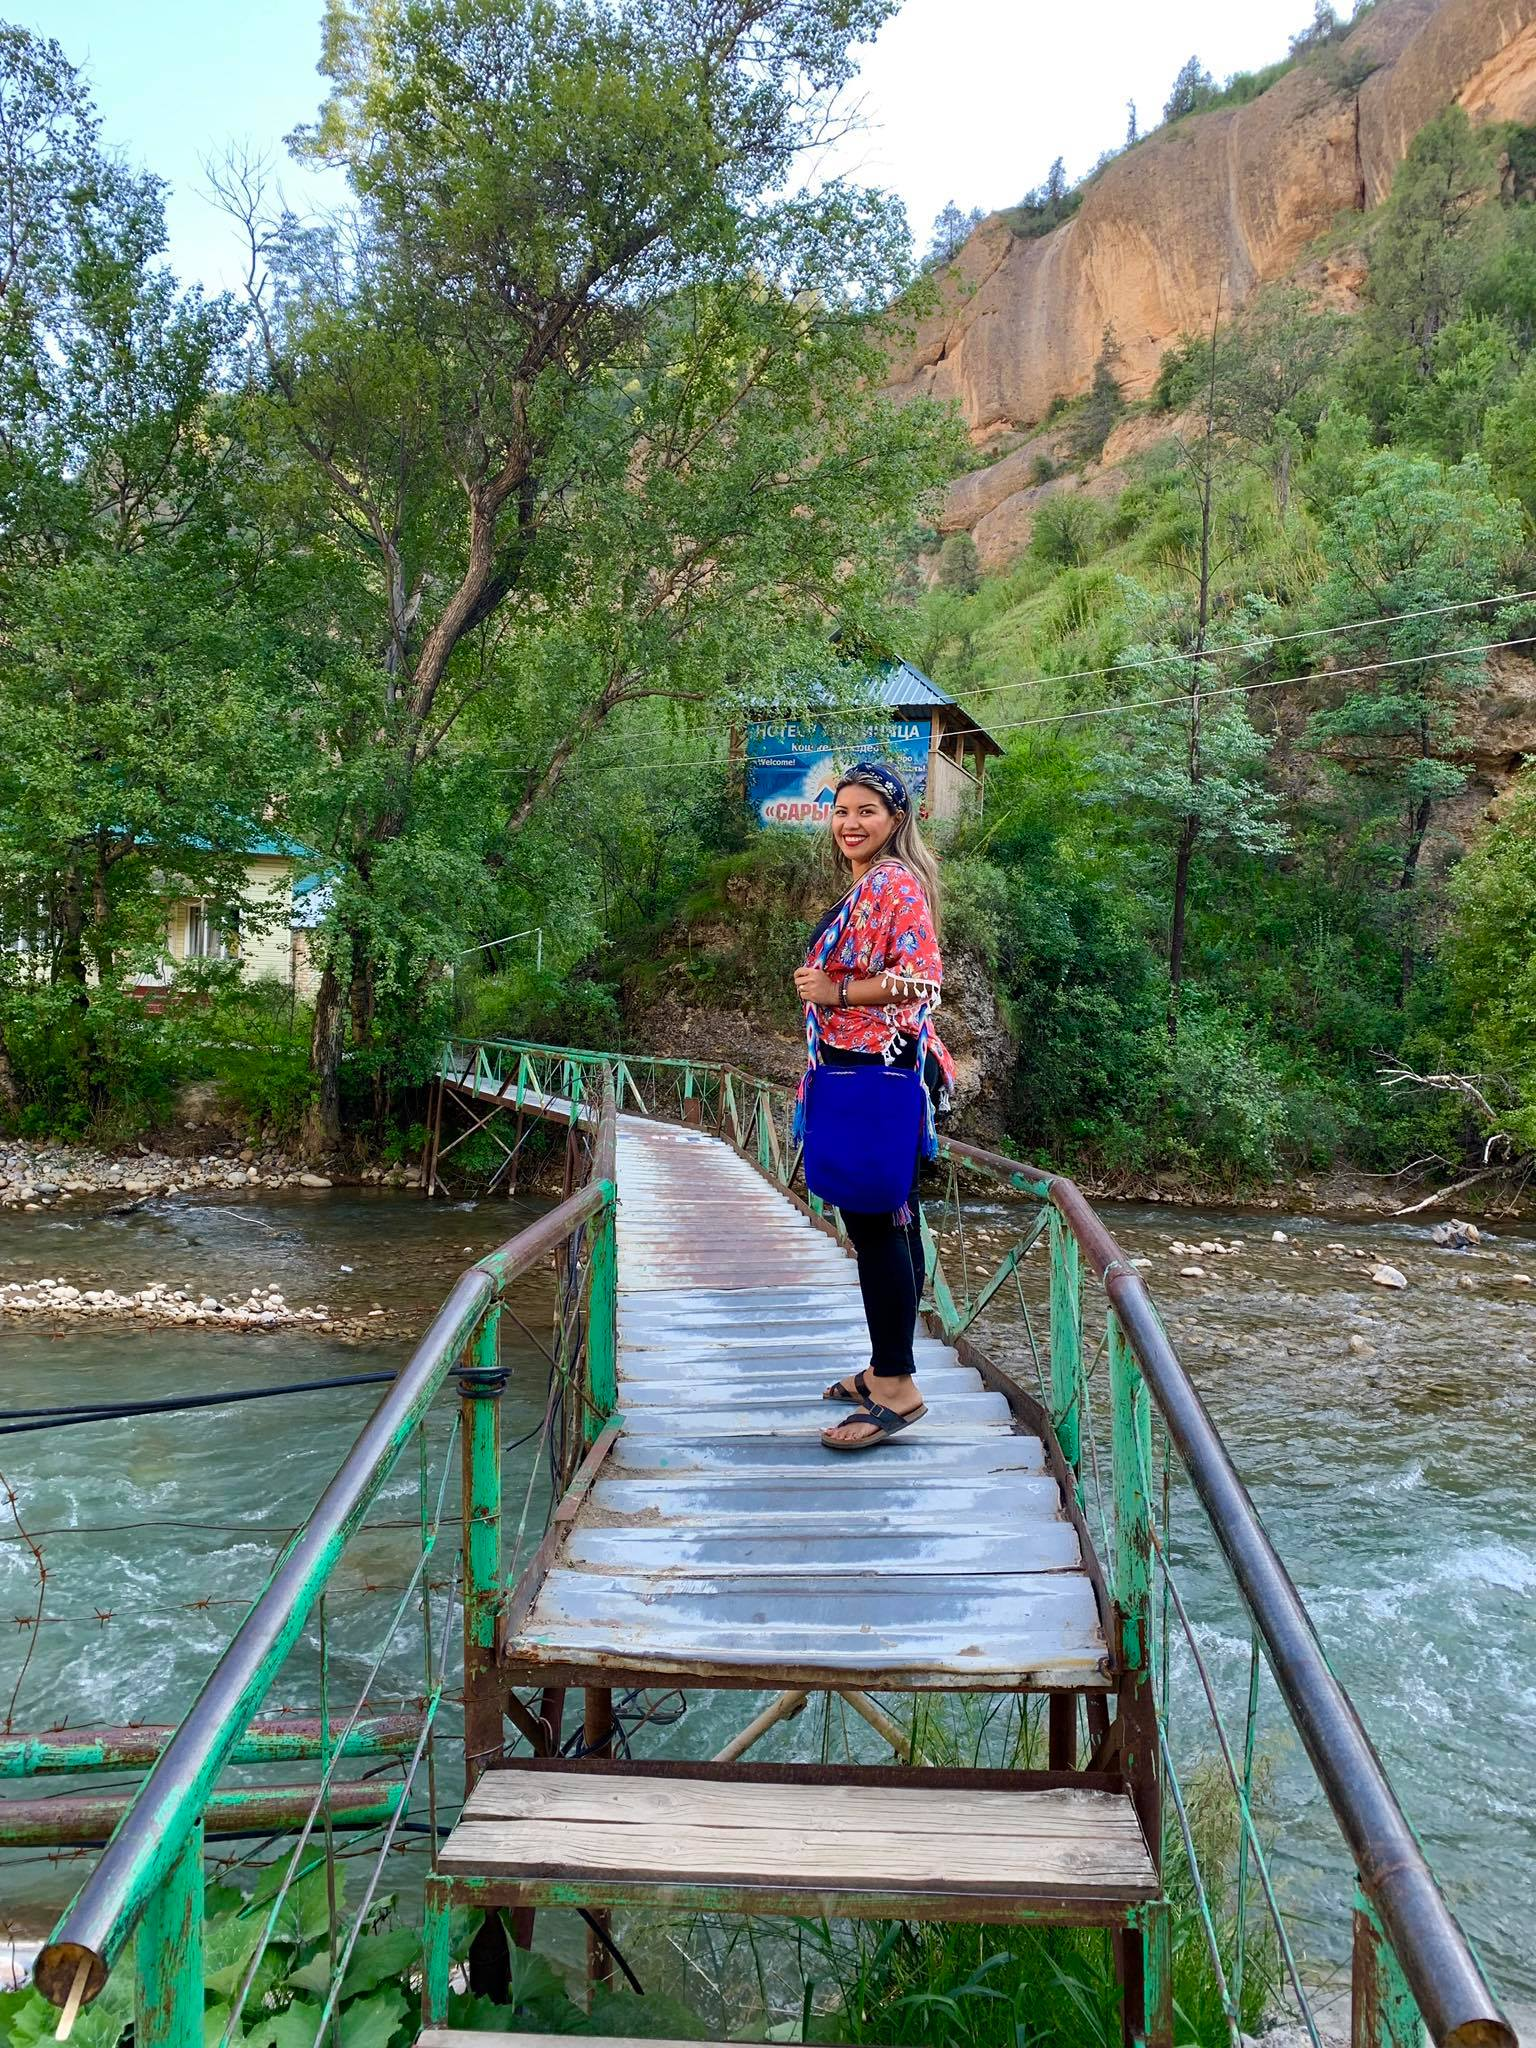 Kach Solo Travels in 2019 Roadtrip to Sary Chelek Lake which is 330 km. from Osh, Kyrgyzstan14.jpg